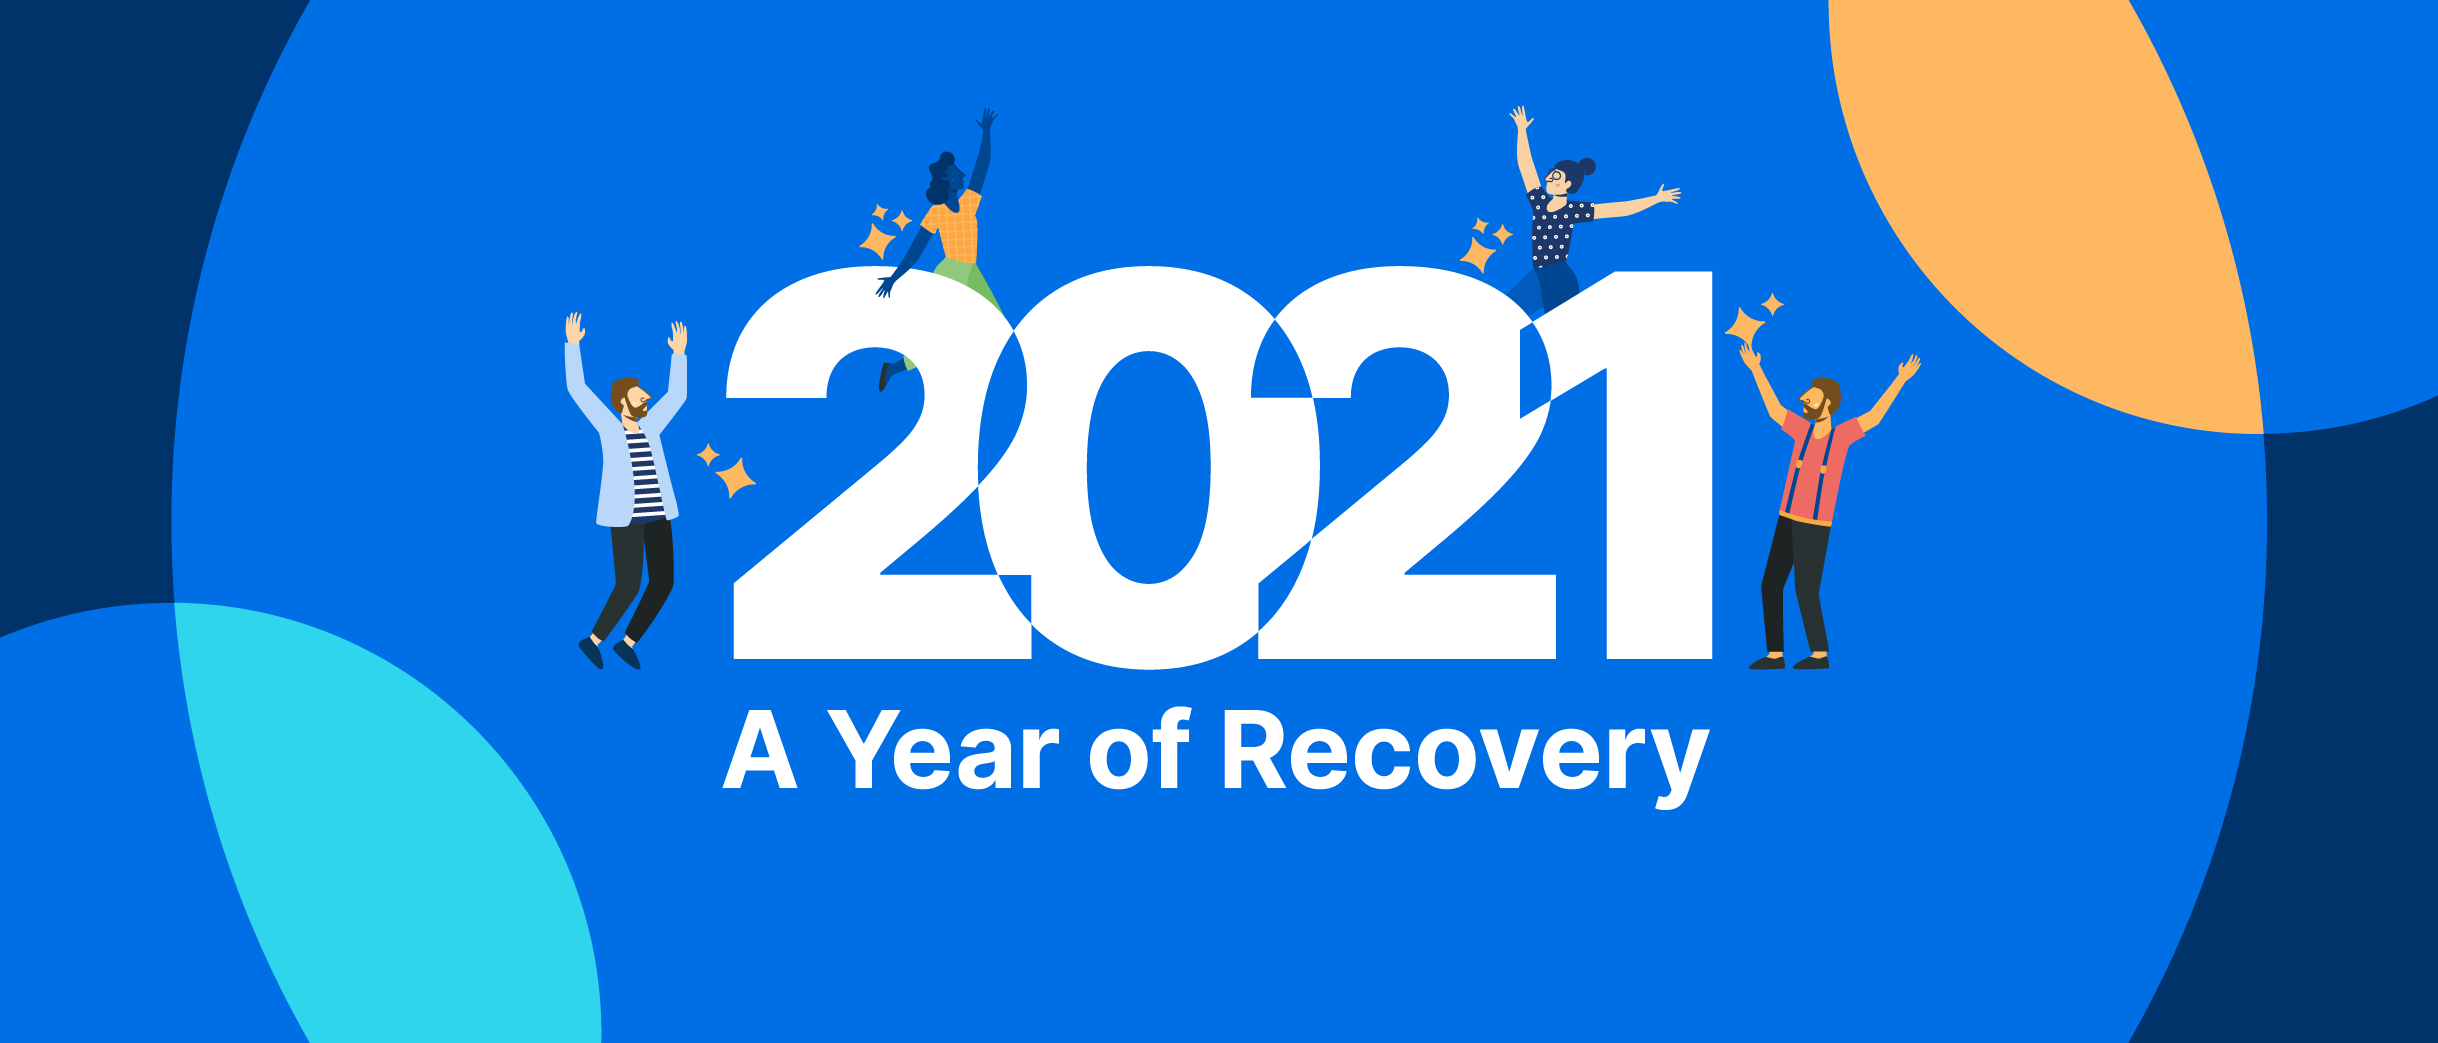 With many challenges caused by the COVID-19 pandemic in 2020, many are banking on 2021 to be the year of recovery, particularly for businesses.